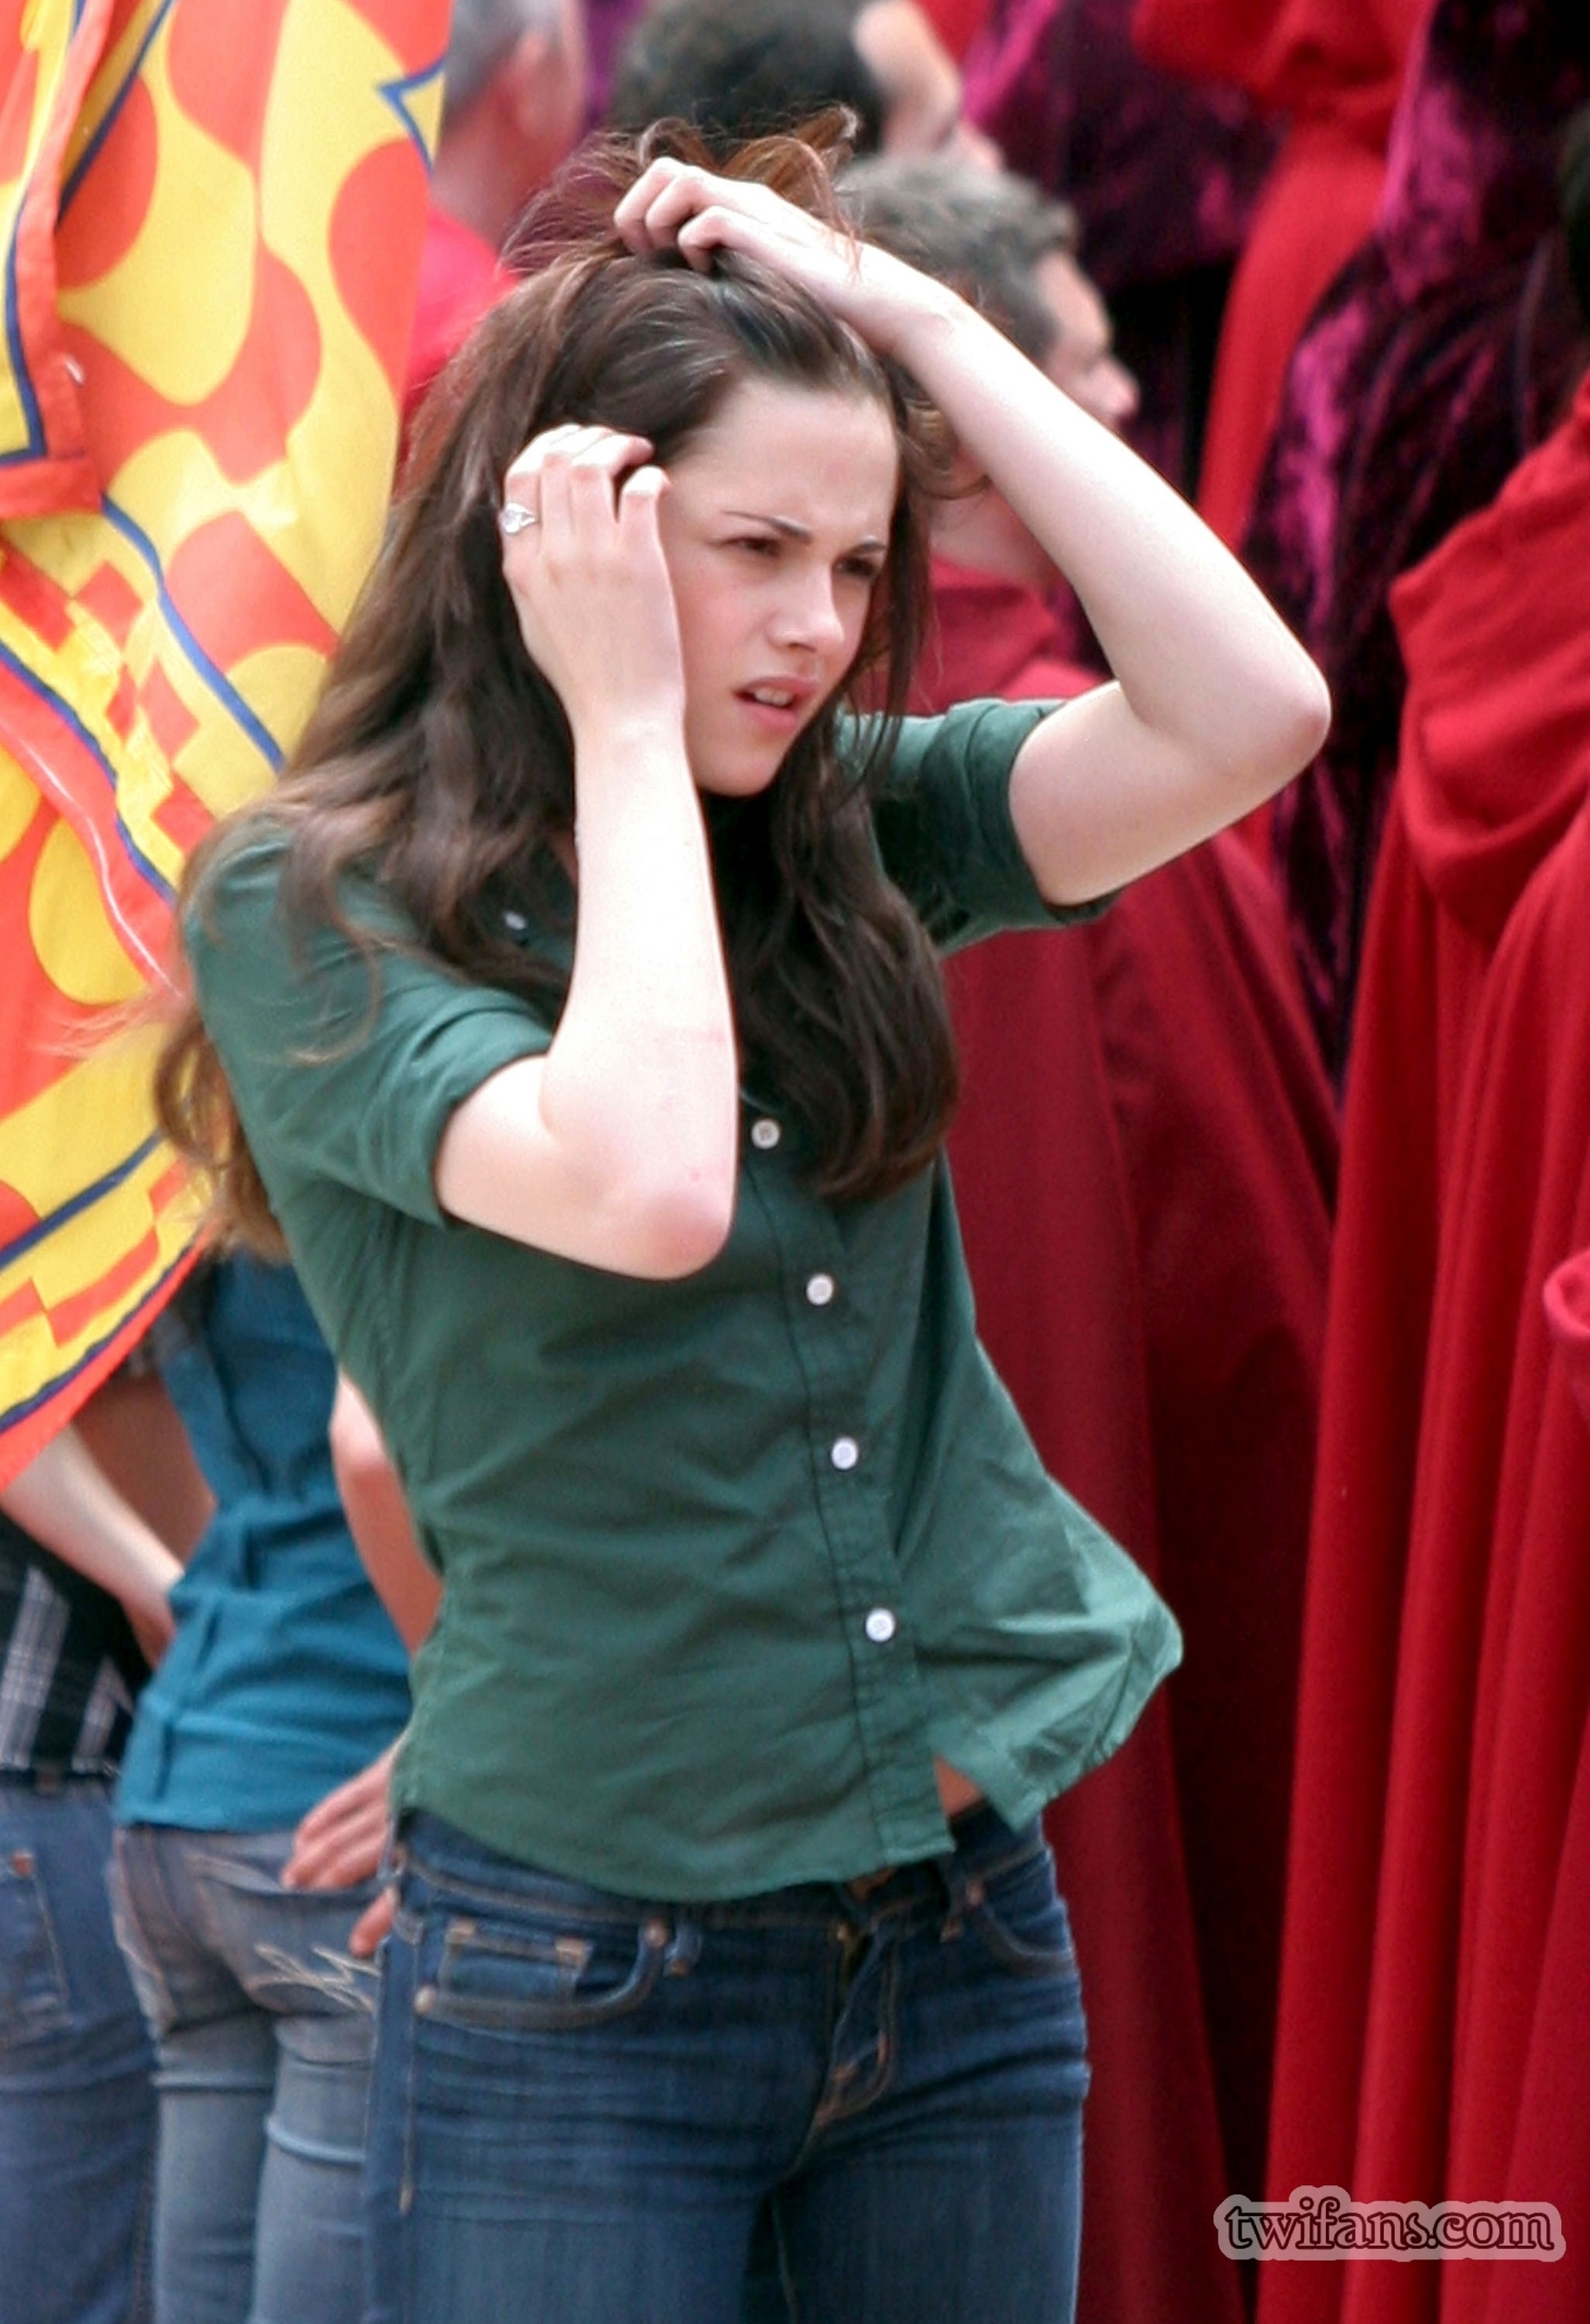 http://images2.fanpop.com/images/photos/6400000/on-set-twilight-series-6431799-1752-2560.jpg